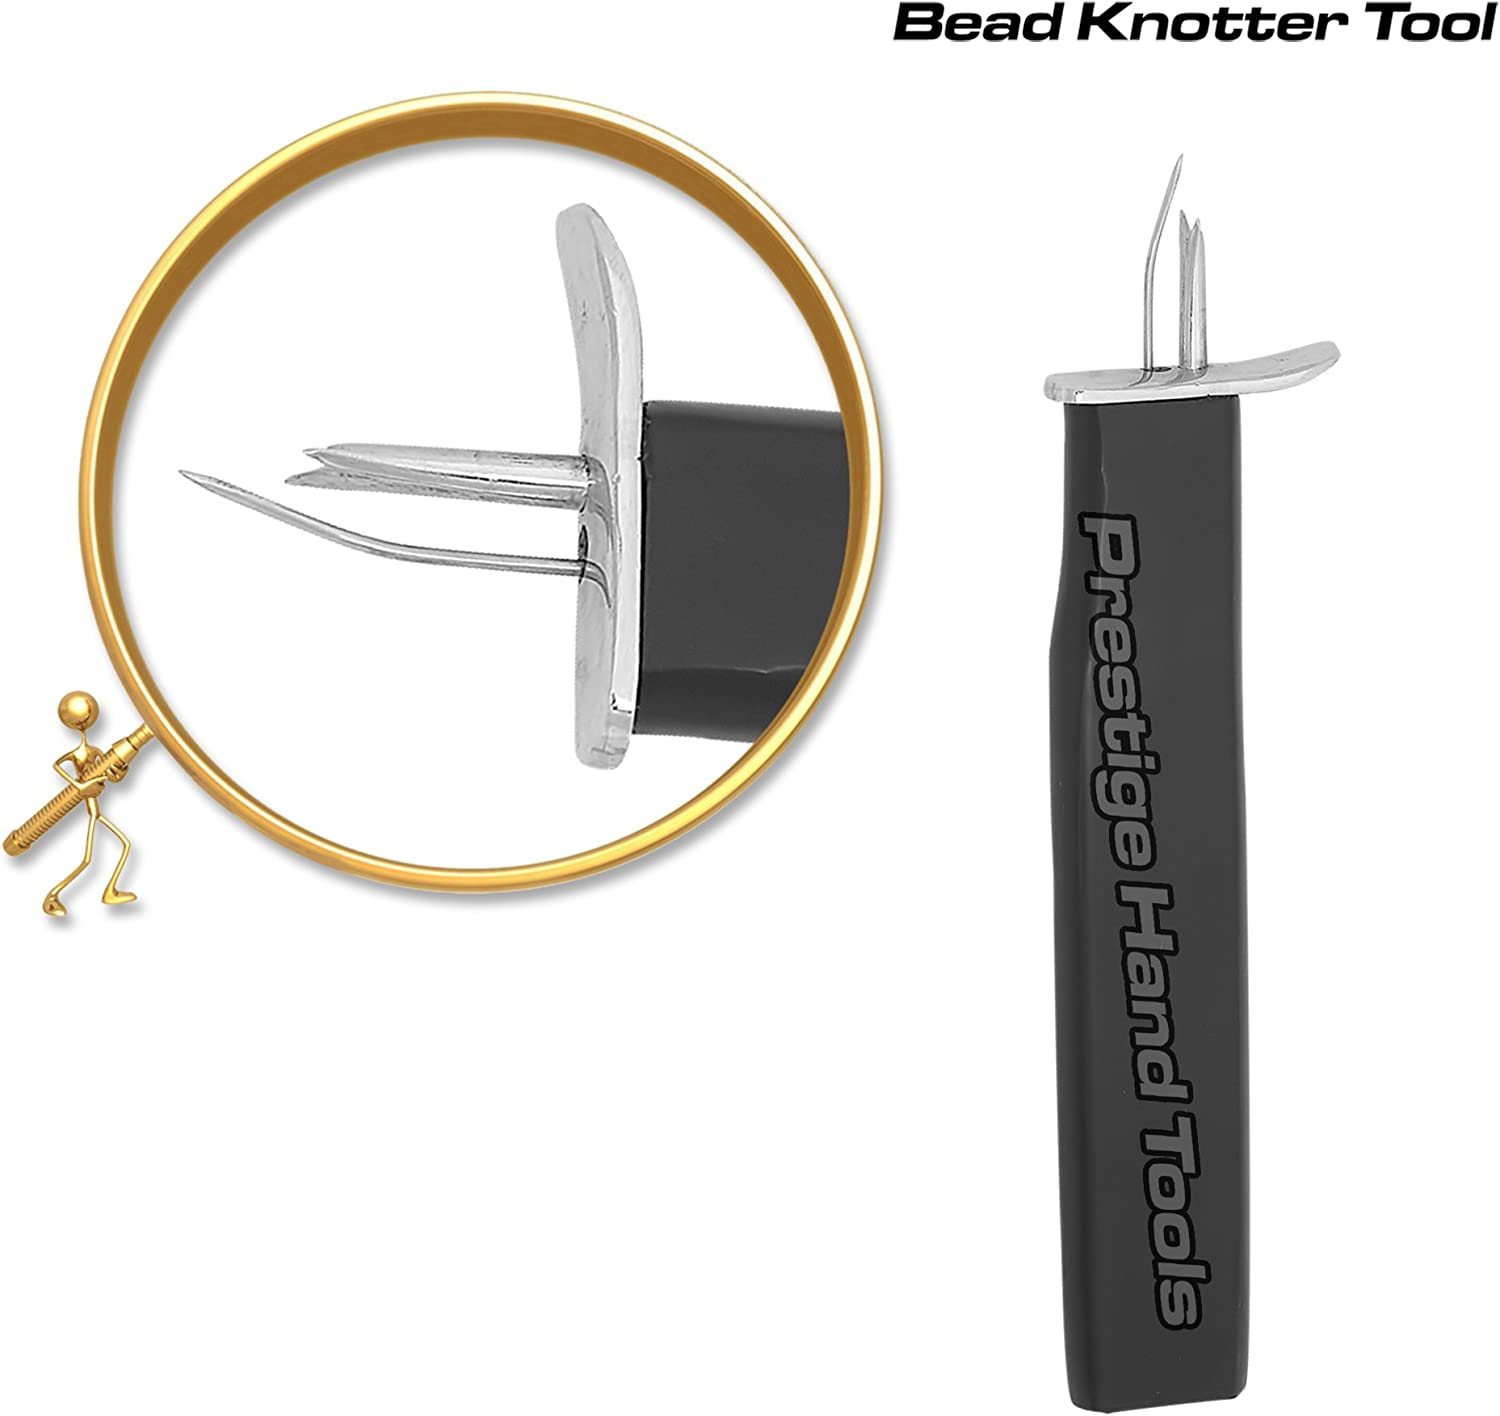 Prestige knotting tool knotter beads jewellers professional tight conistent knot